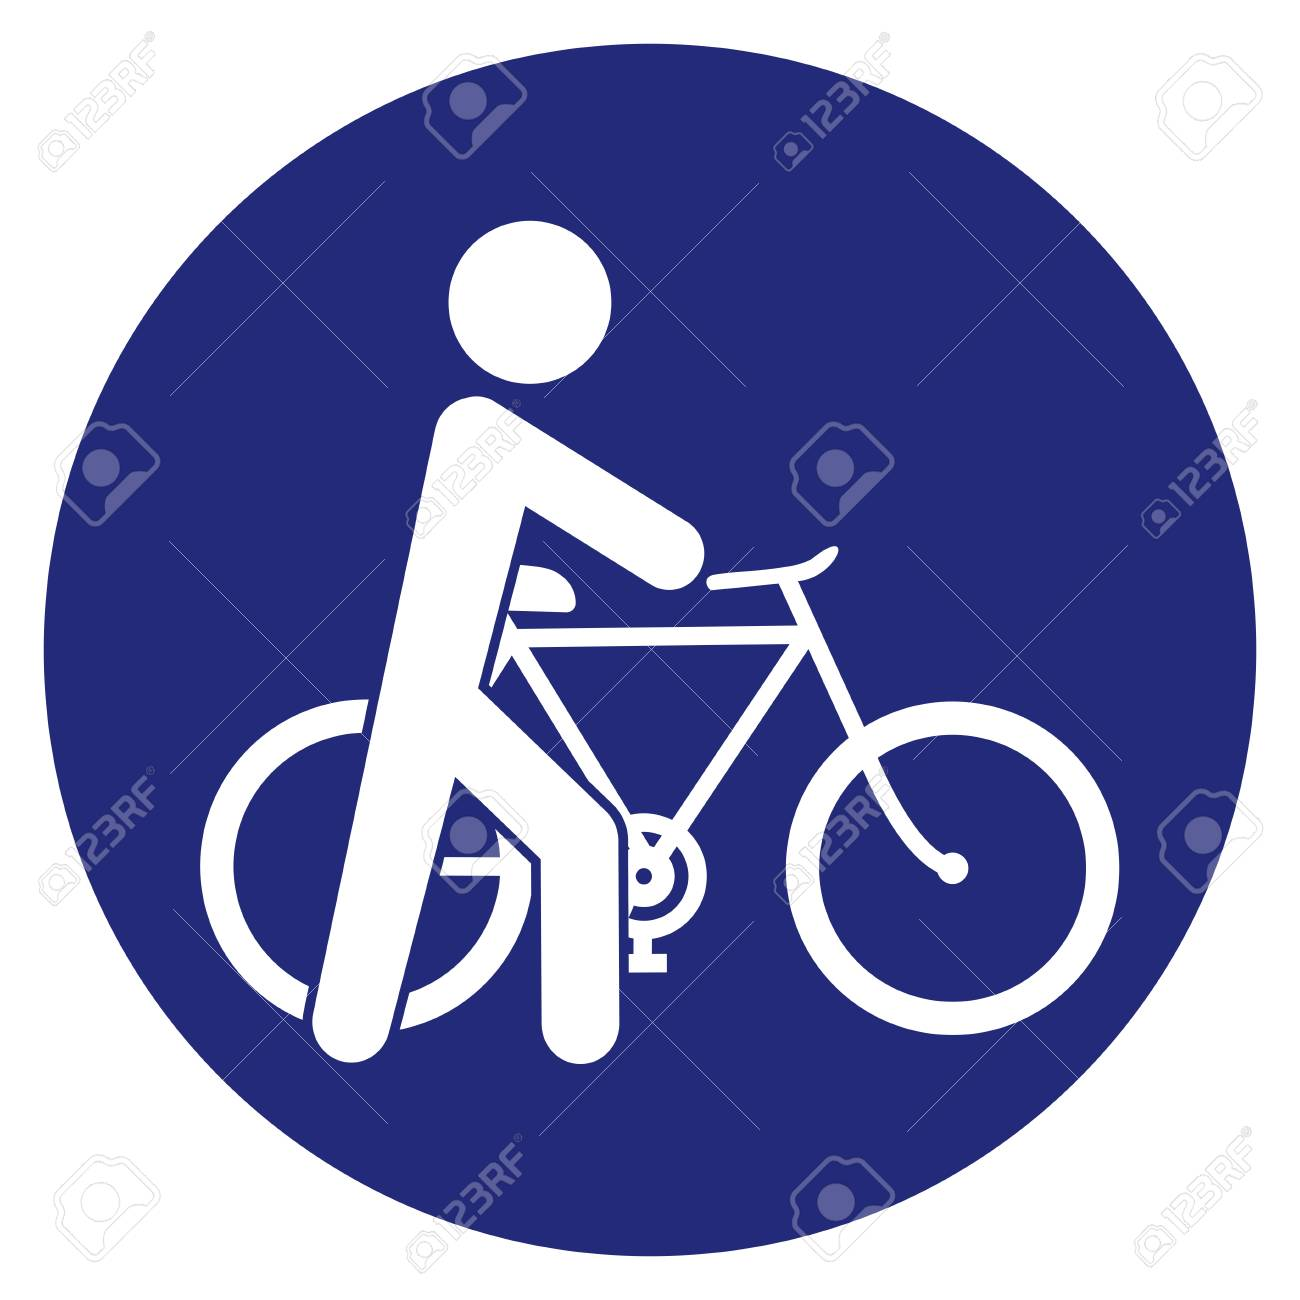 Cyclist, Get Off The Bike, go next to the bike, vector road sign, blue circle frame. - 123544073